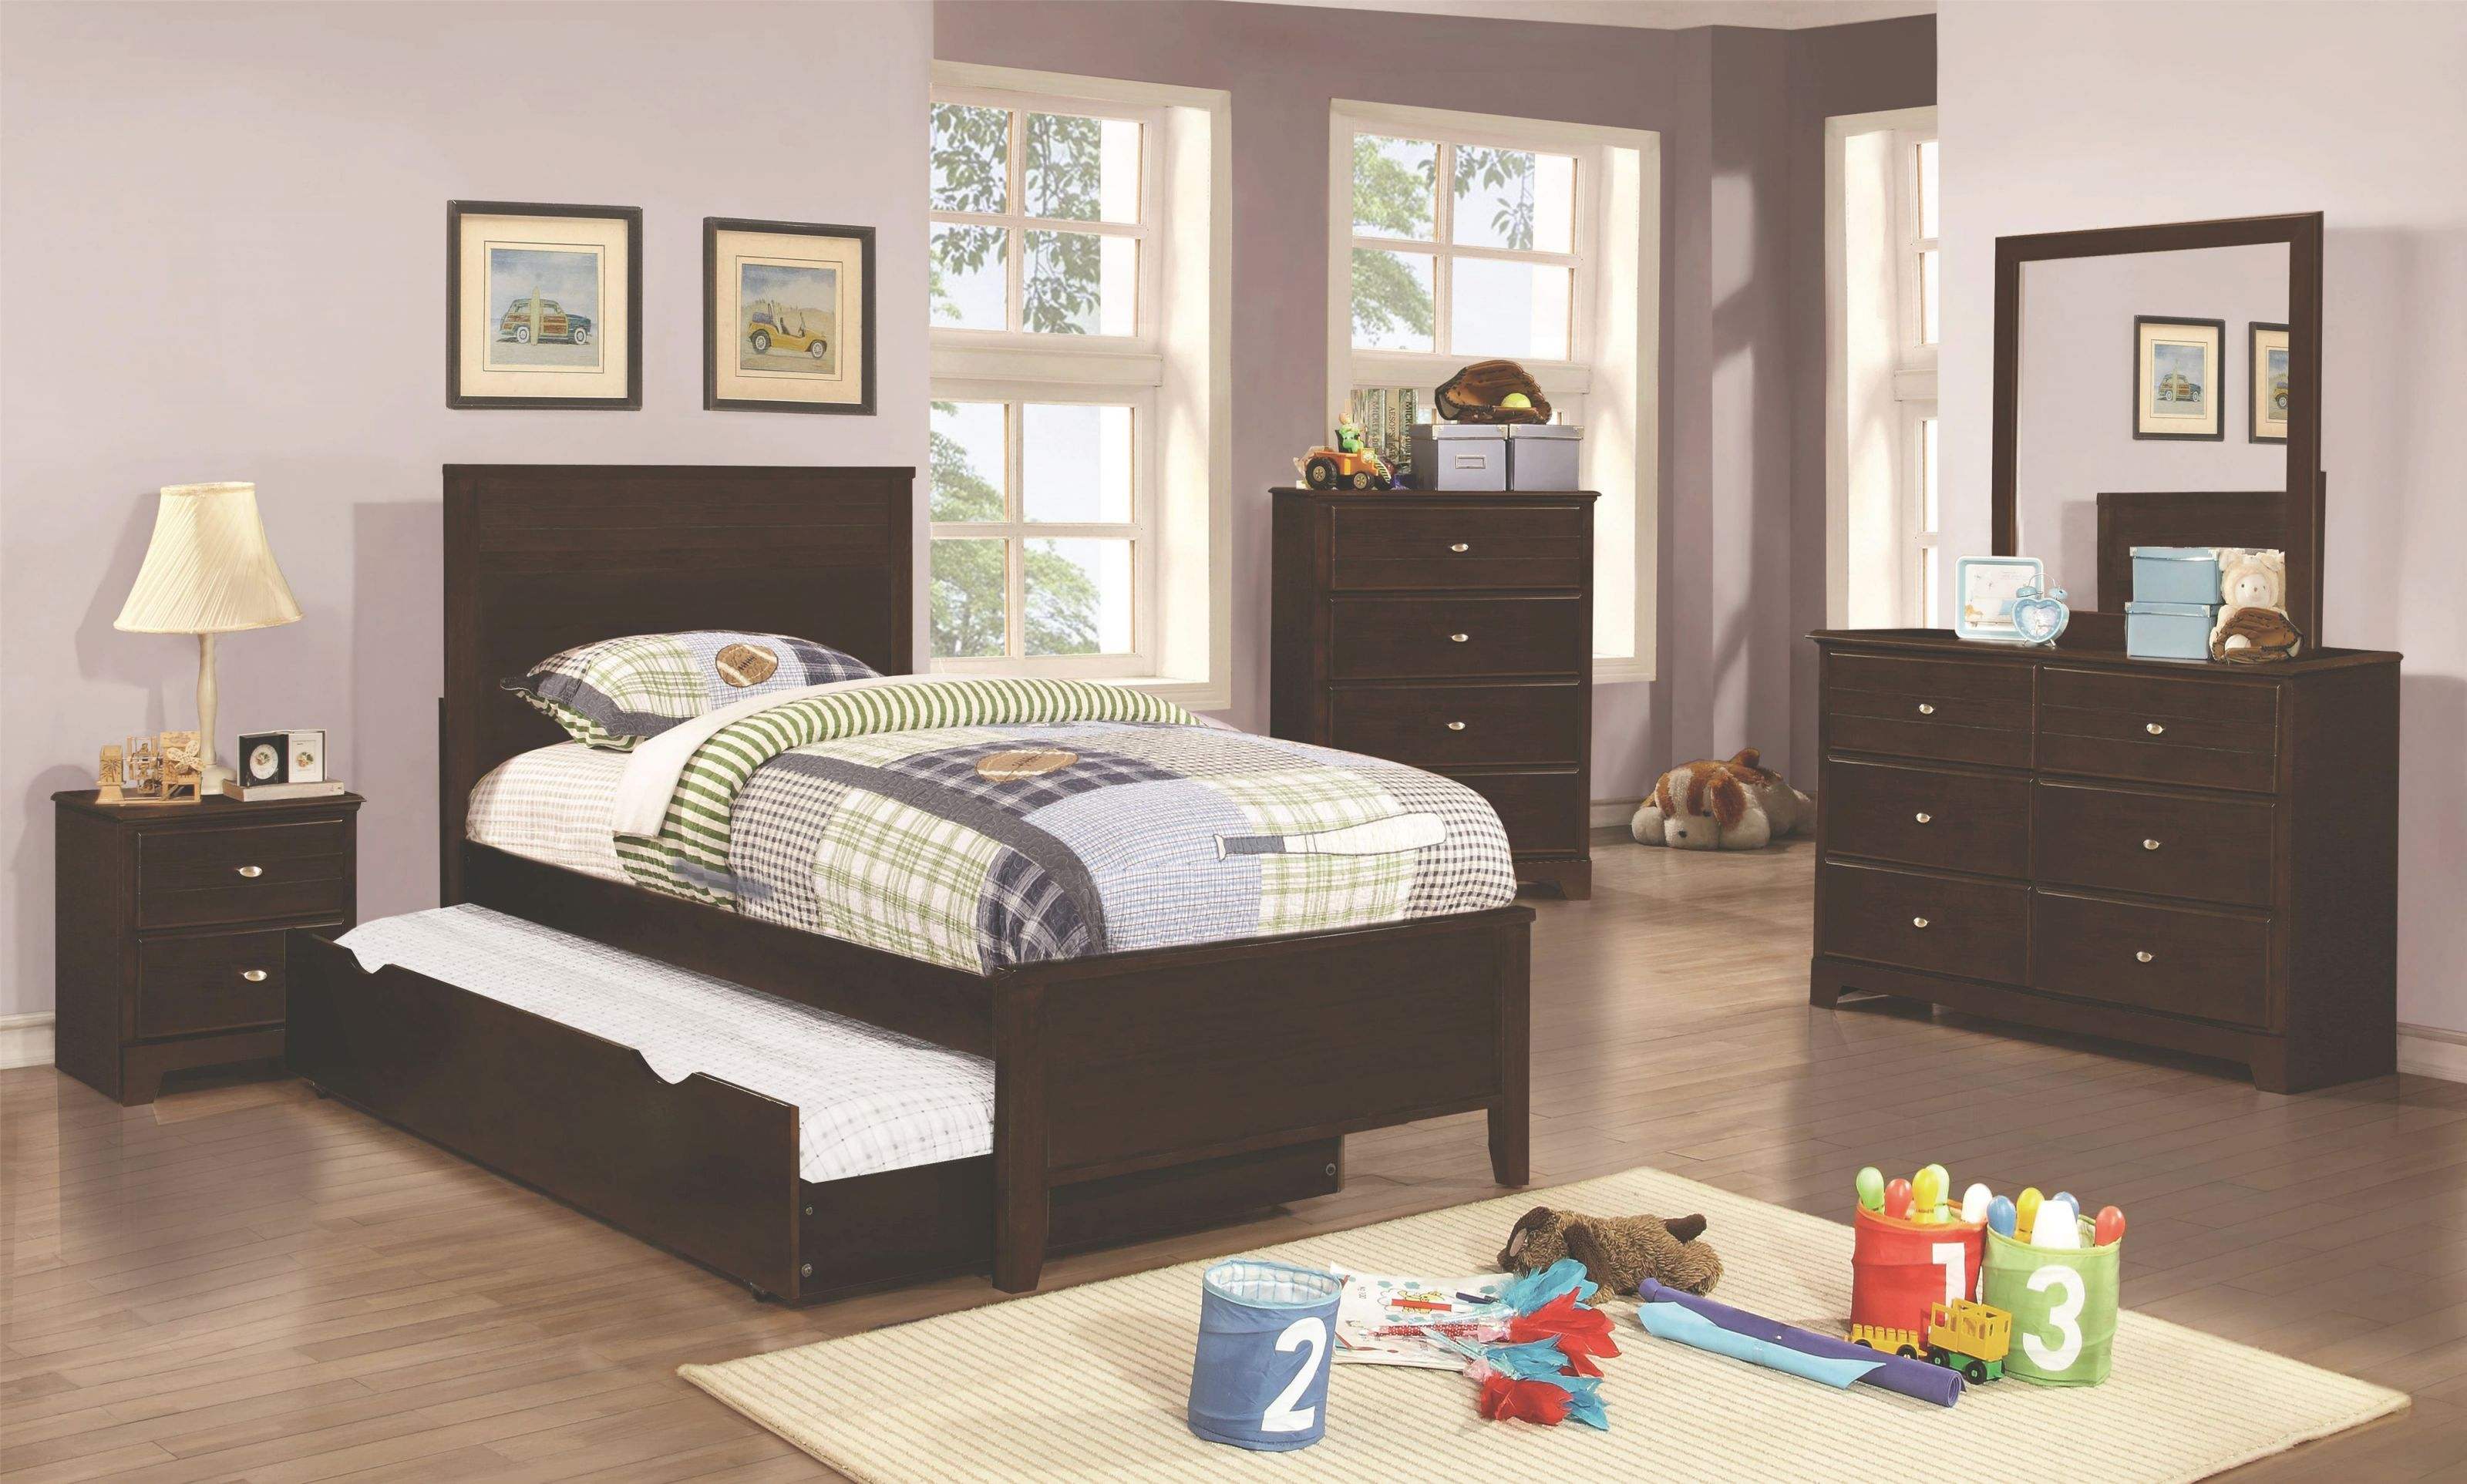 Ashton Collection Full Trundle Bedroom Groupcoaster At Dunk & Bright Furniture intended for Awesome Full Size Bed With Trundle Bedroom Set